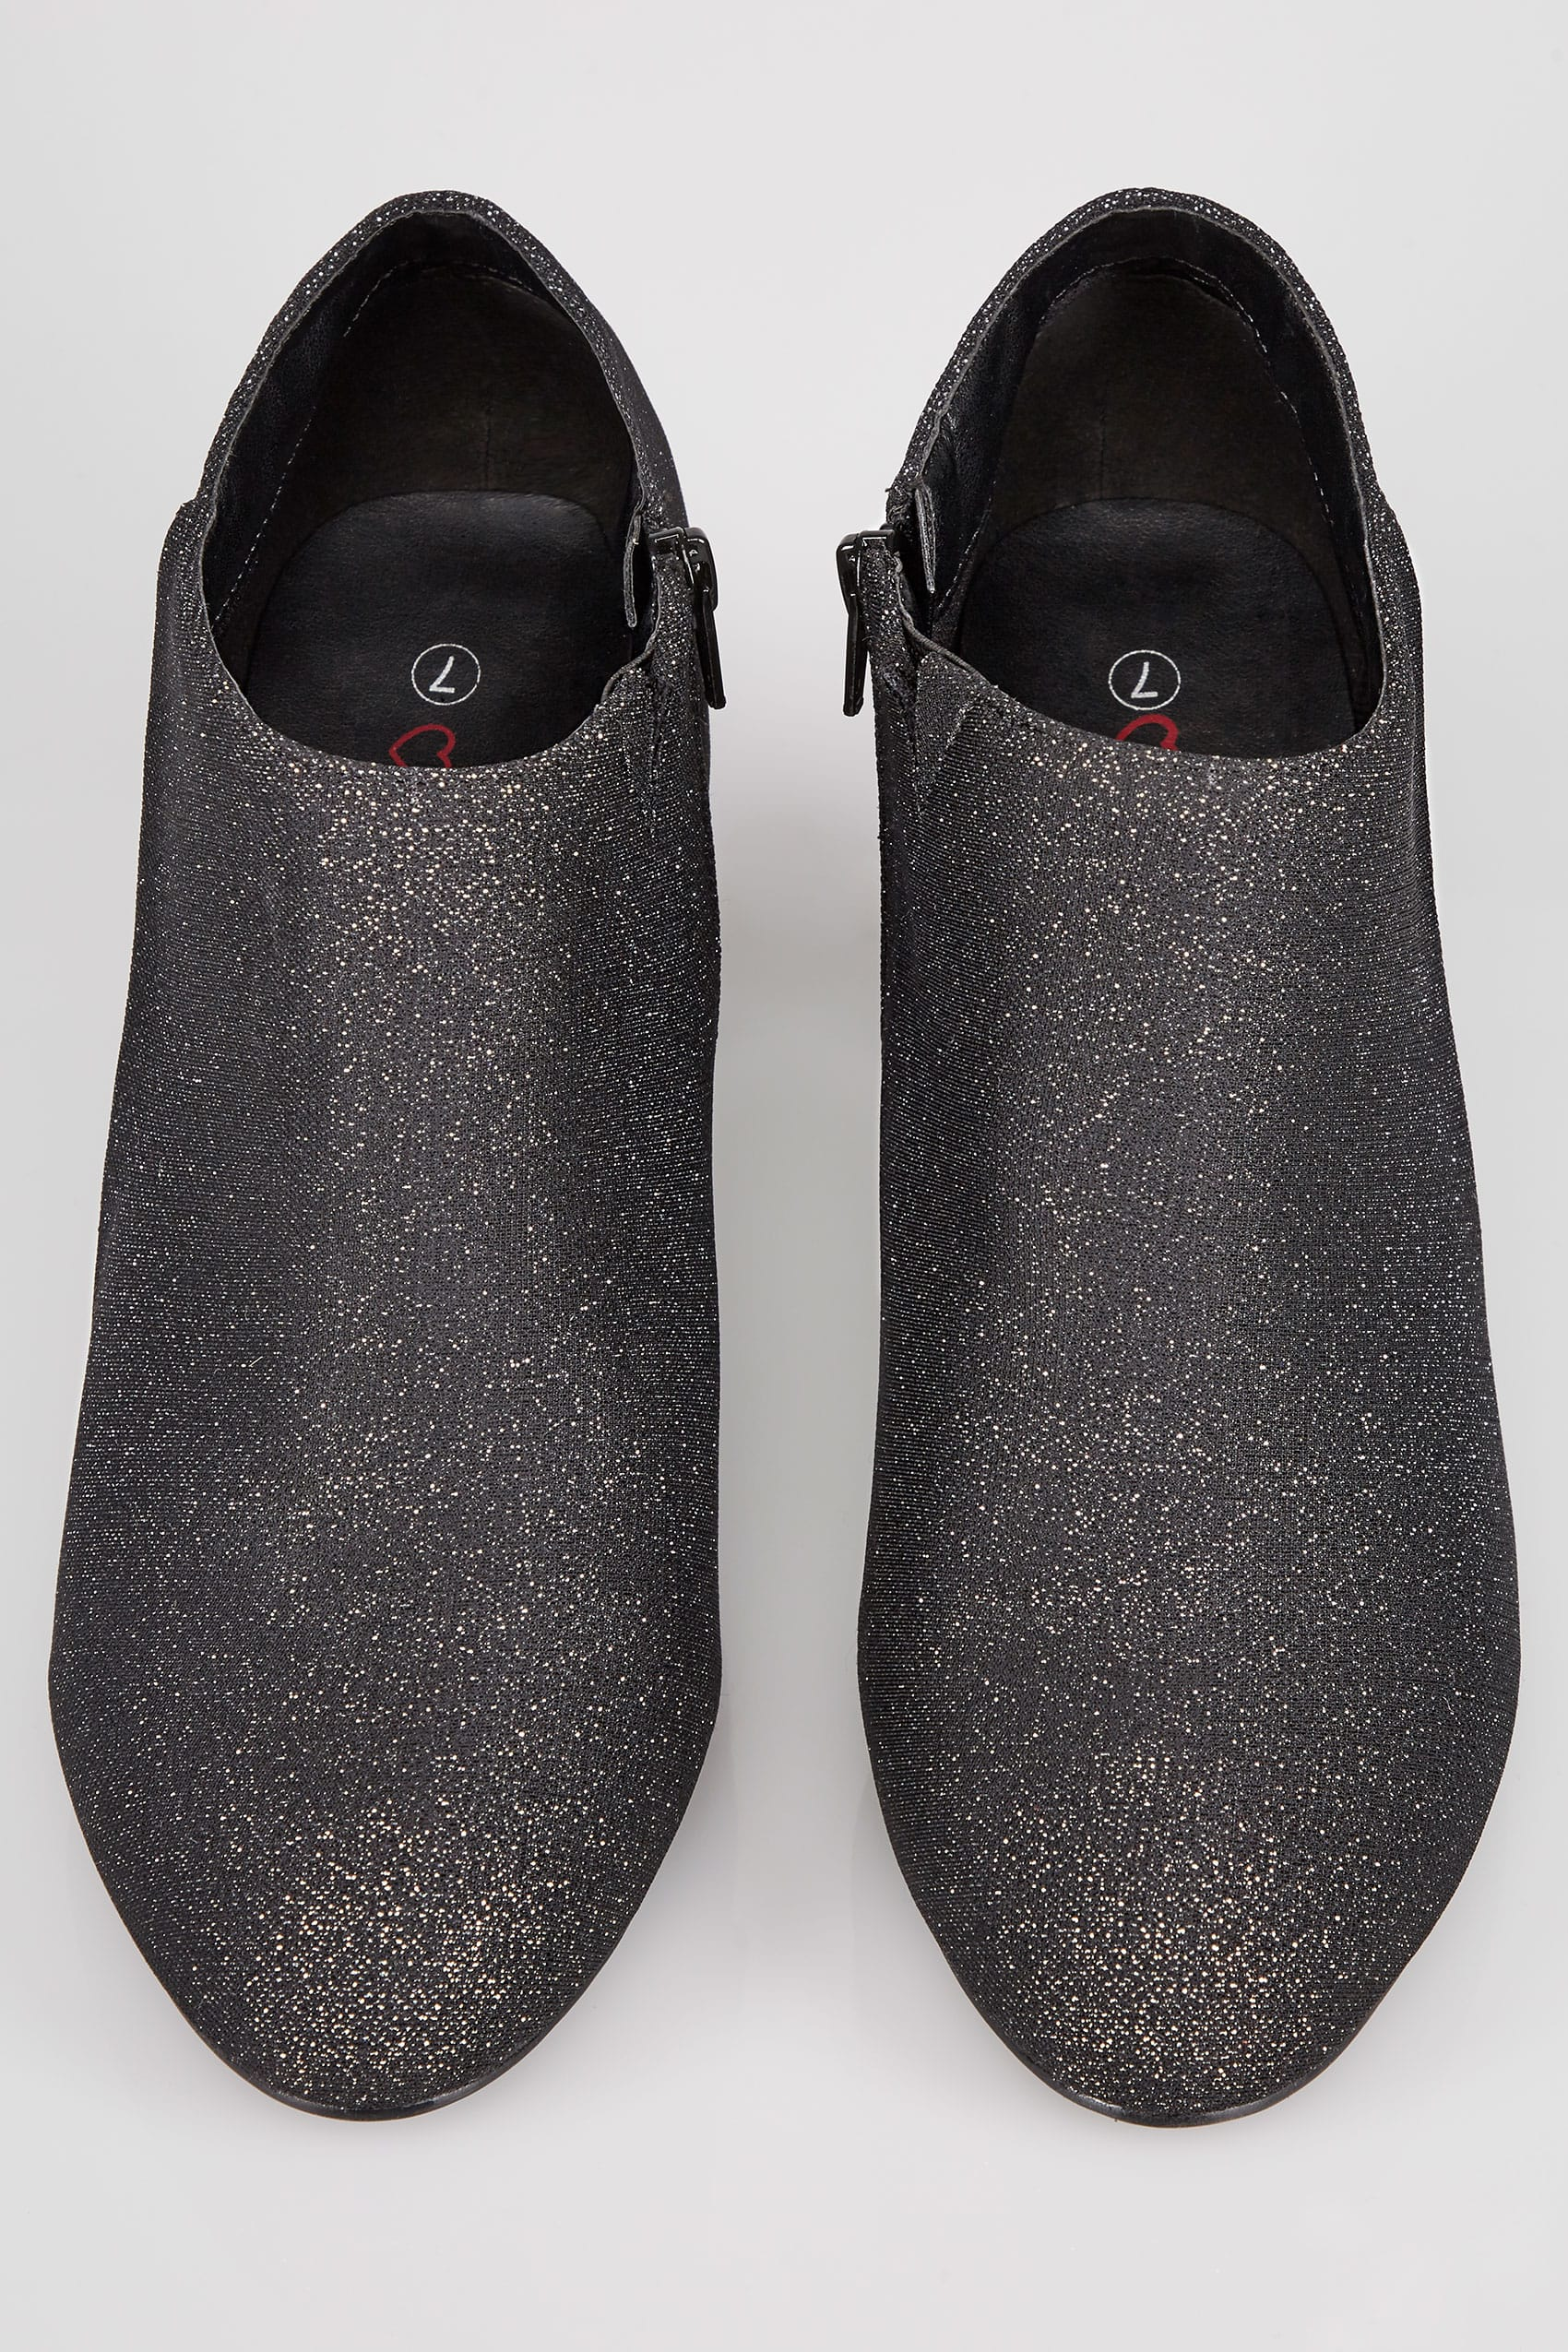 eee fitting shoes size guide